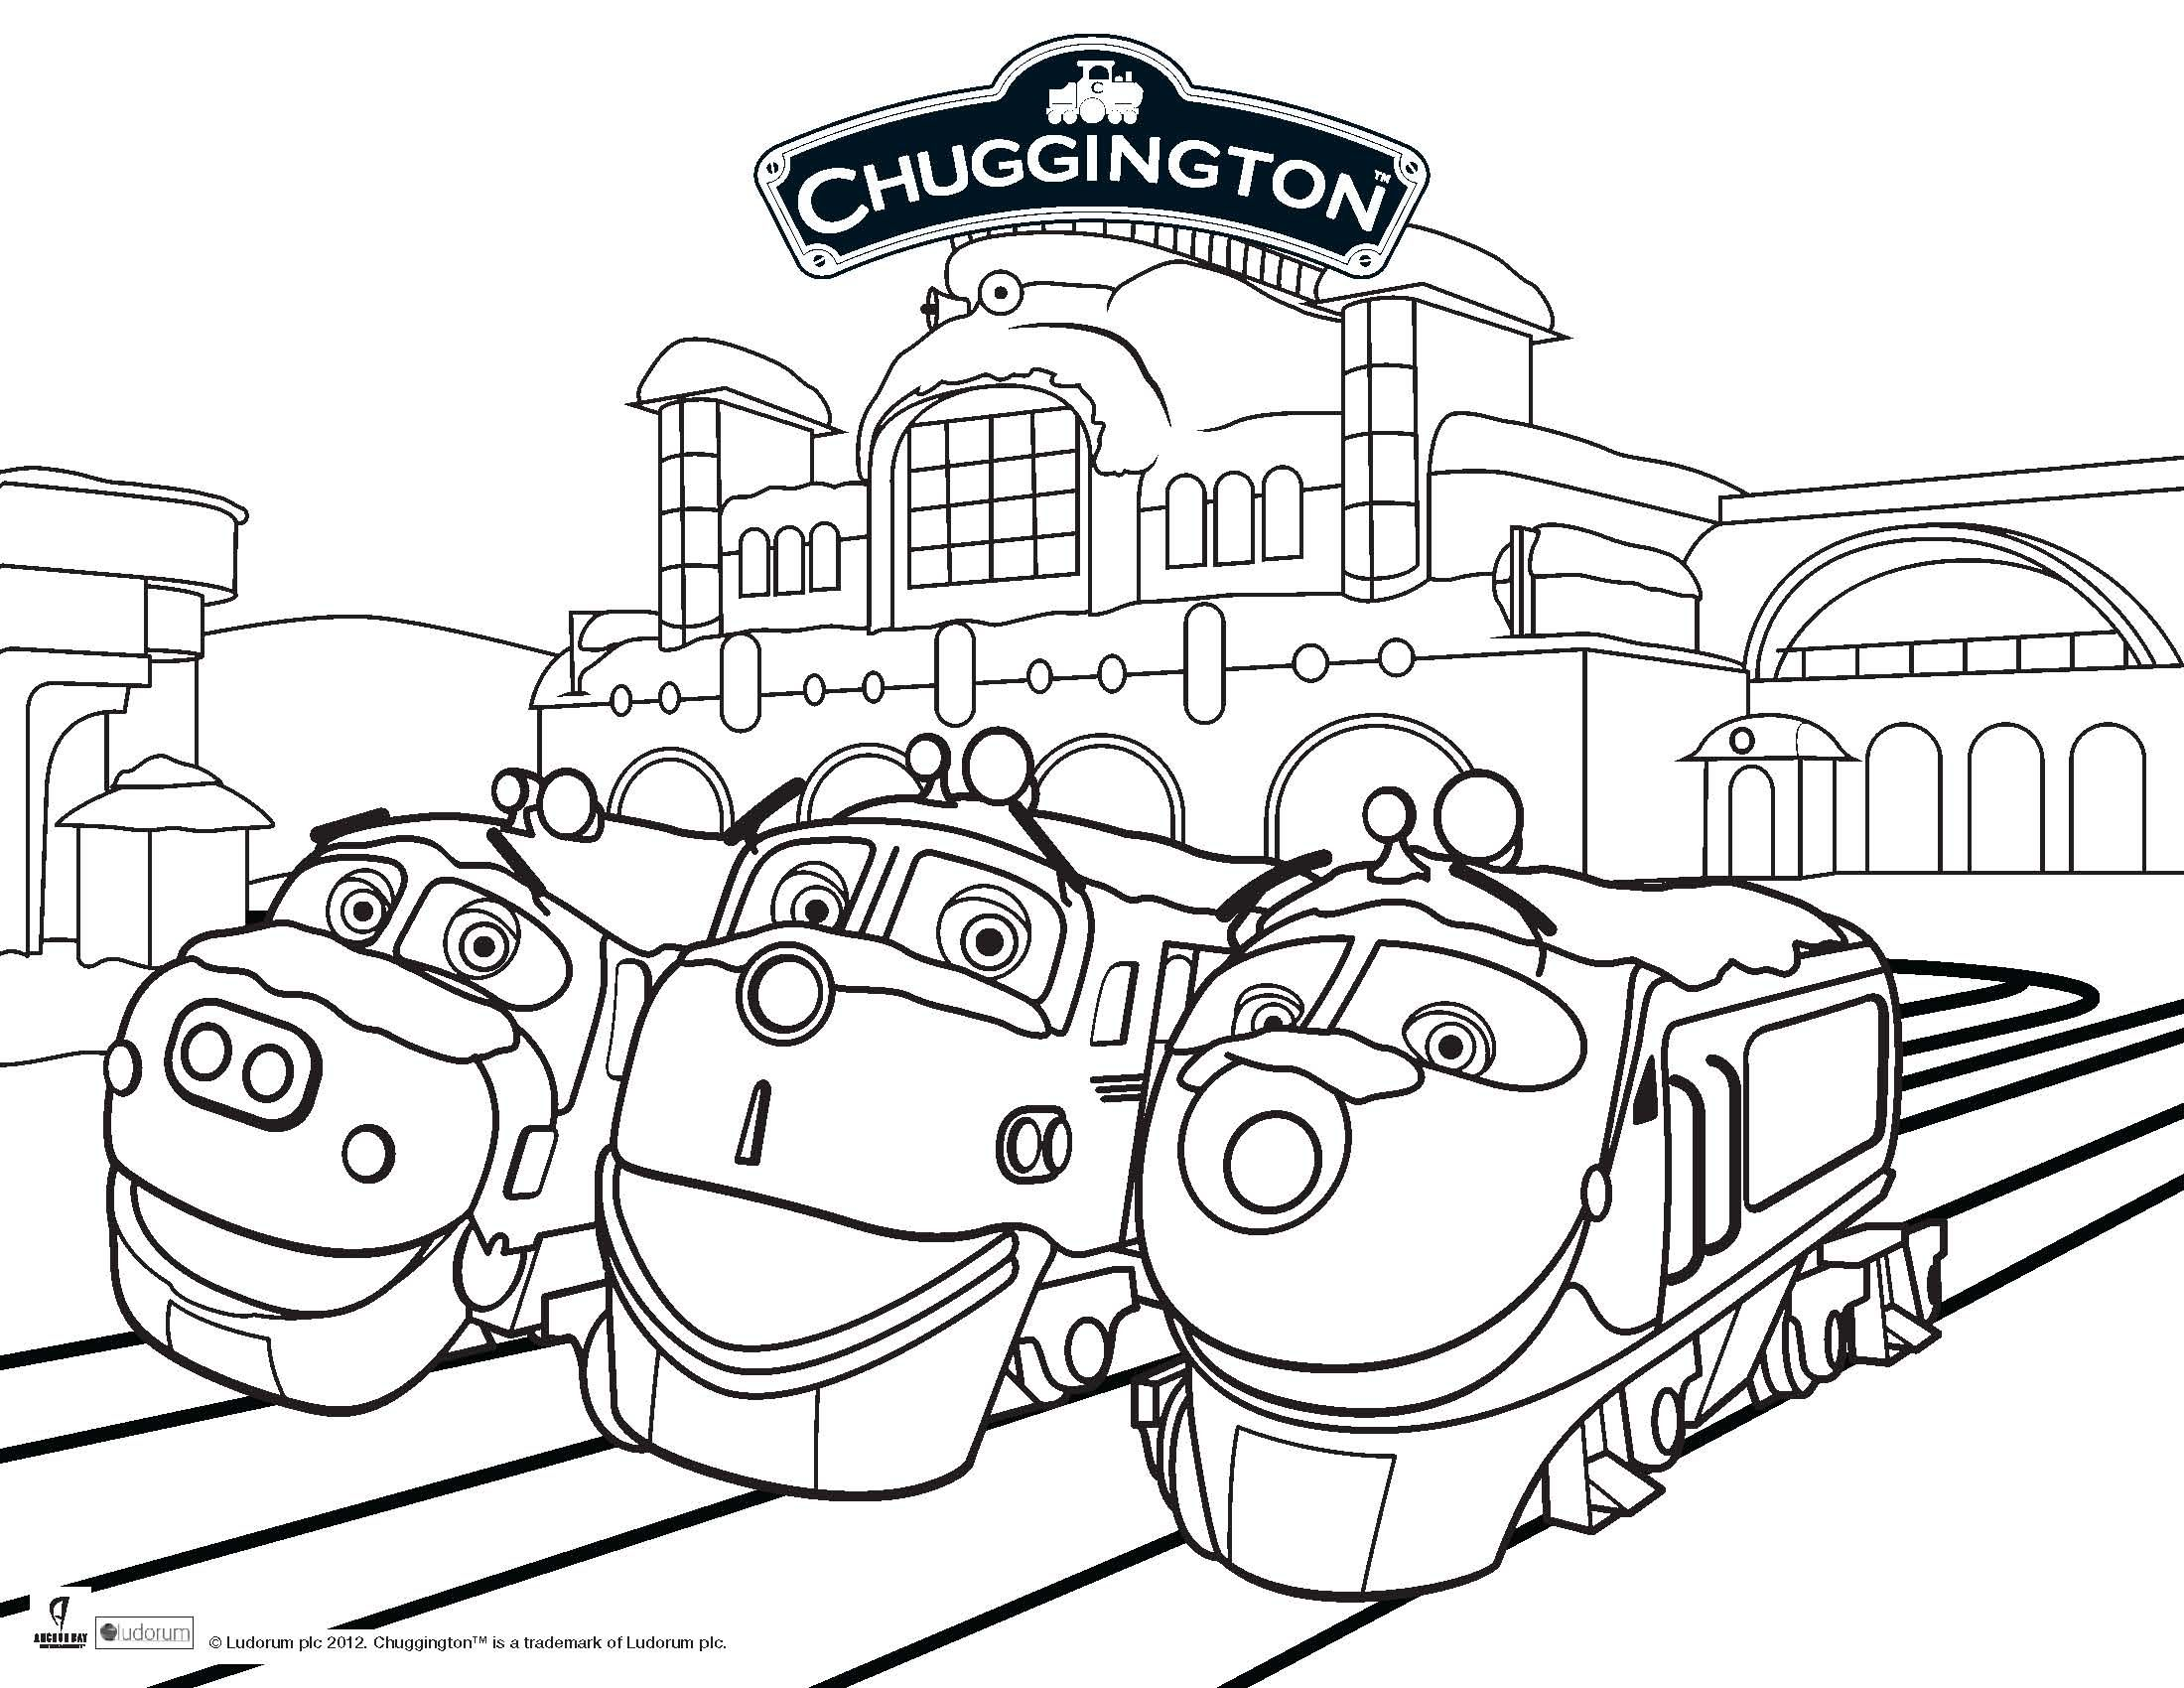 Calling All Children 12 Years And Younger Particiapte In Our Chuggington Coloring Competition For Train Coloring Pages Coloring Pages Geometric Coloring Pages